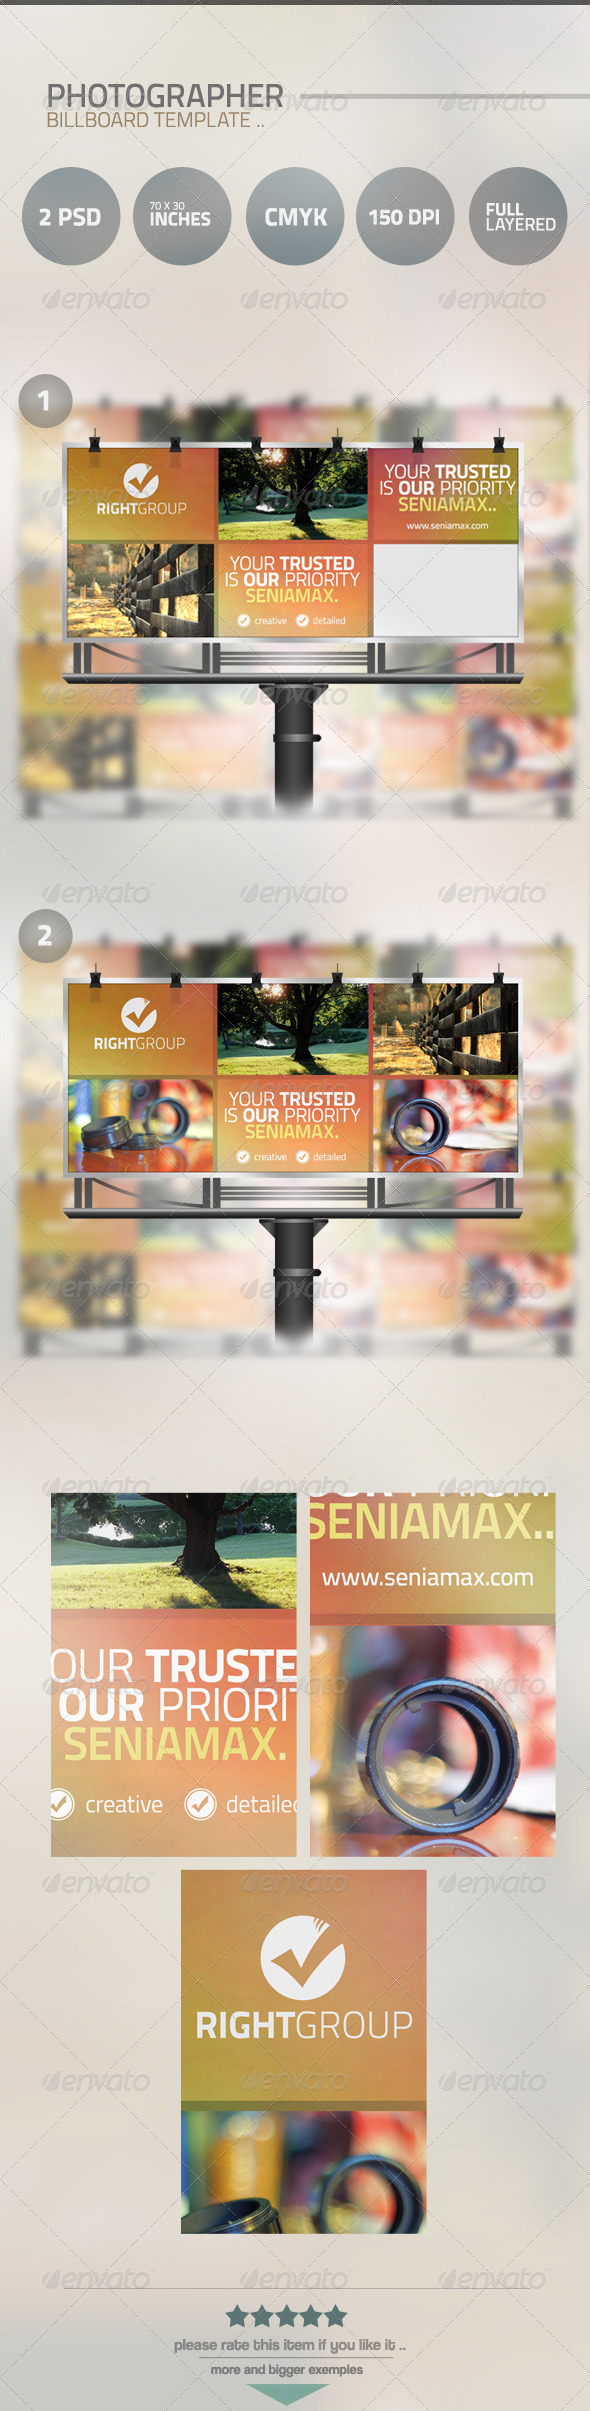 GraphicRiver Photographer Billboard Template 5124110